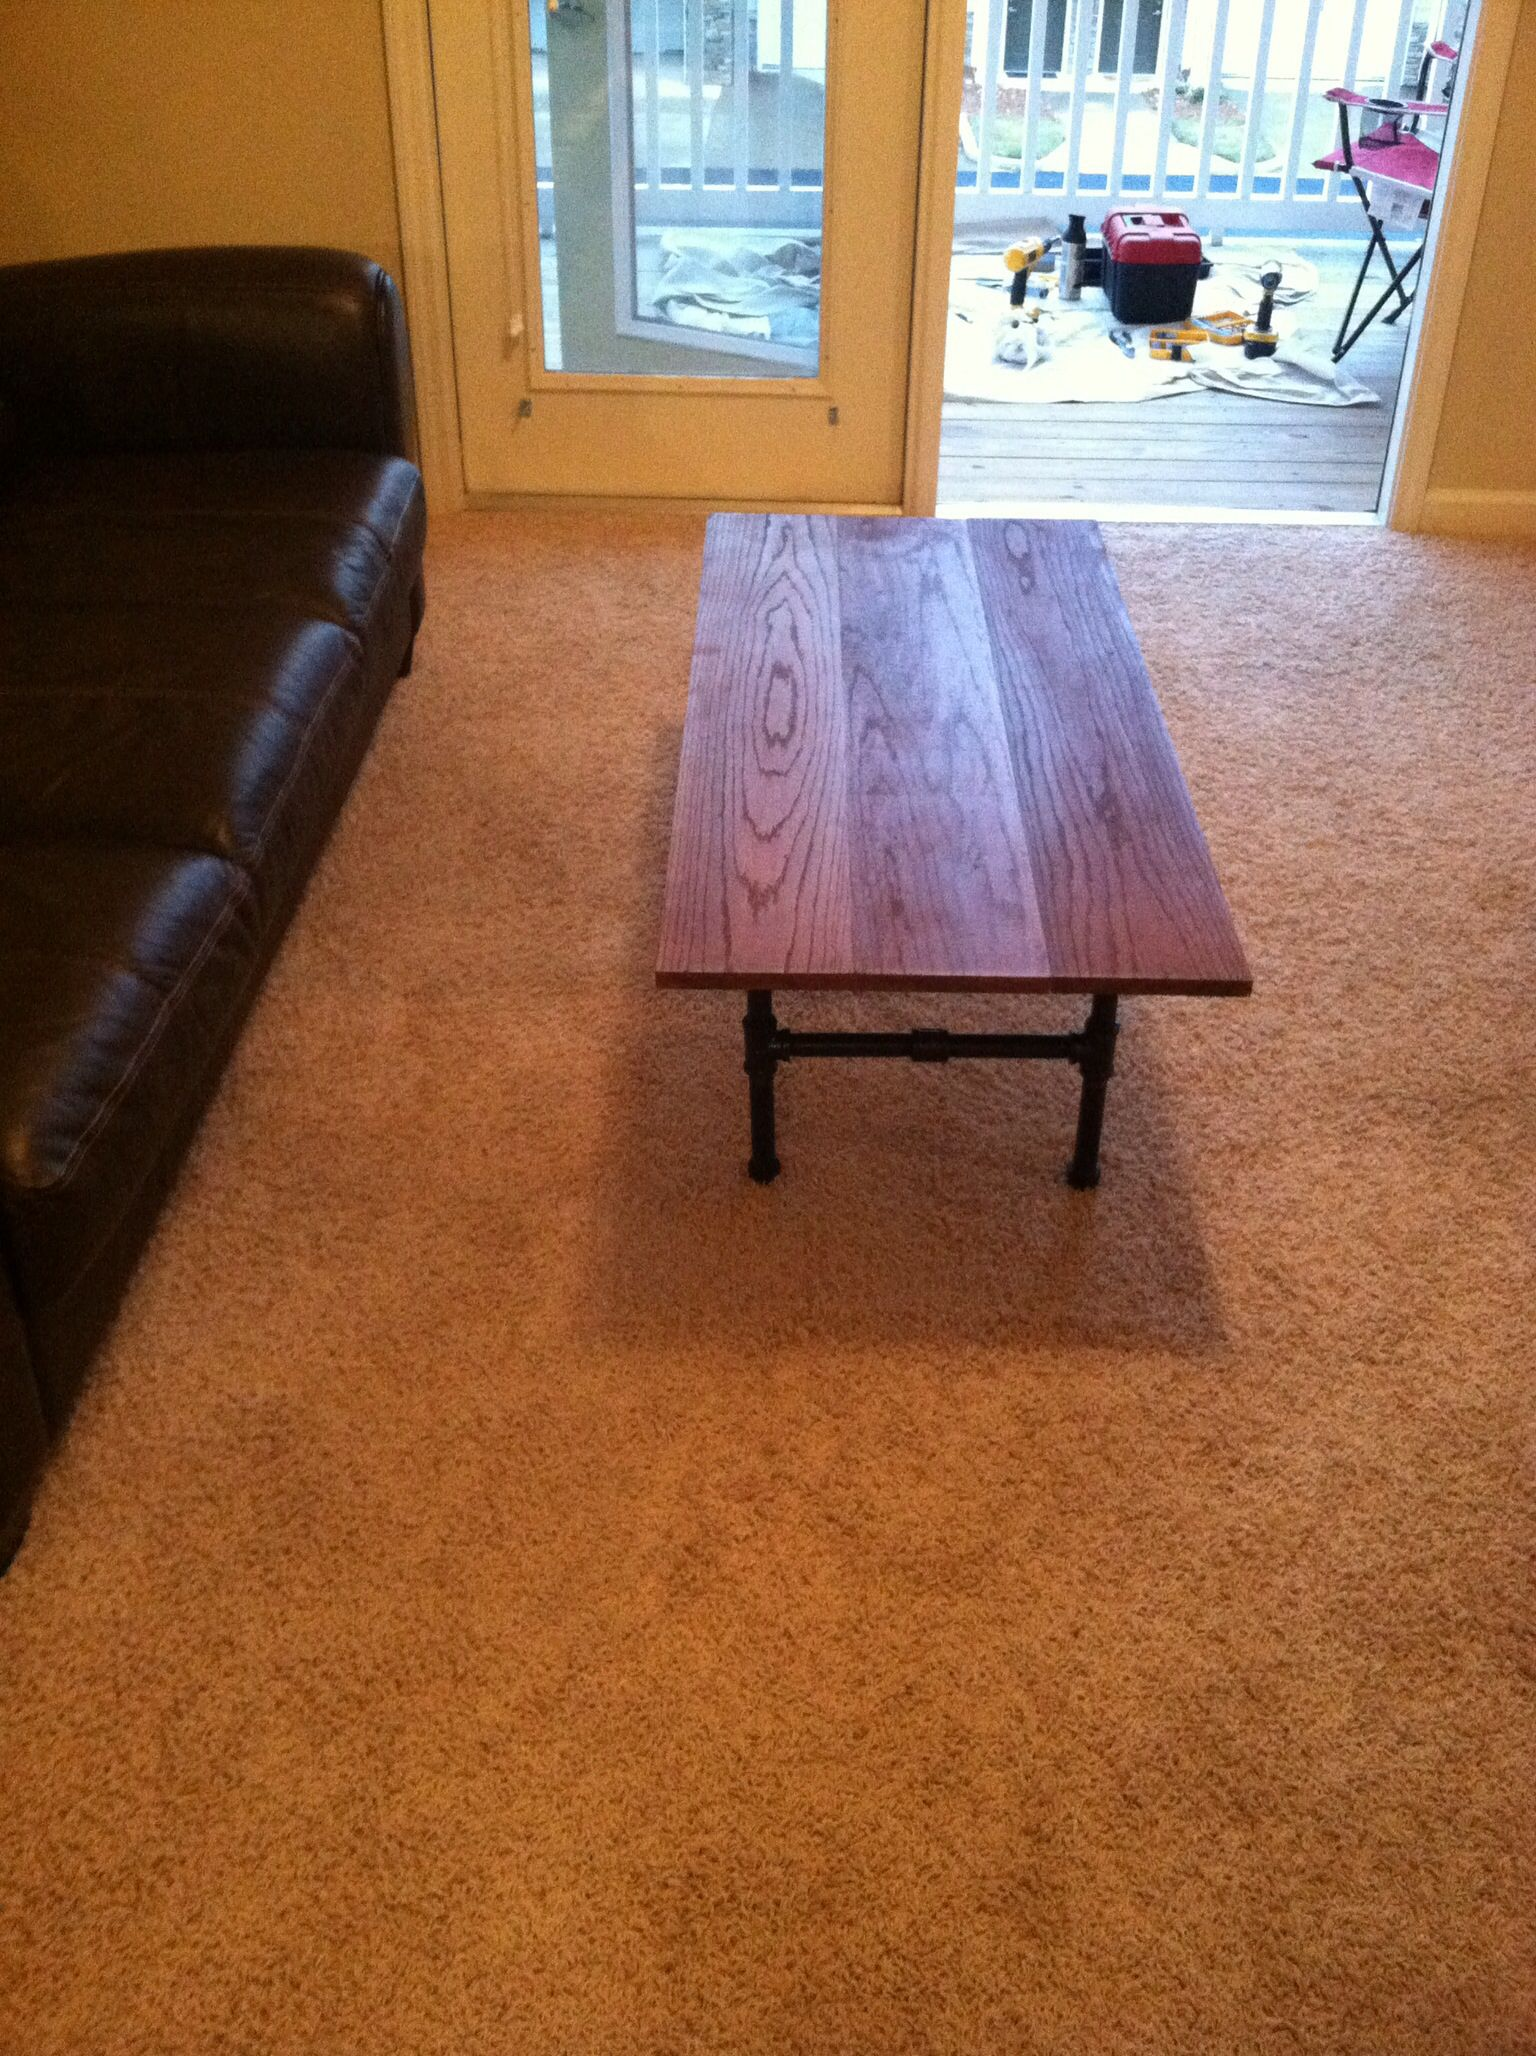 Manly Diy Coffee Table Stuff Pinterest Diy Coffee Table House - Manly coffee table